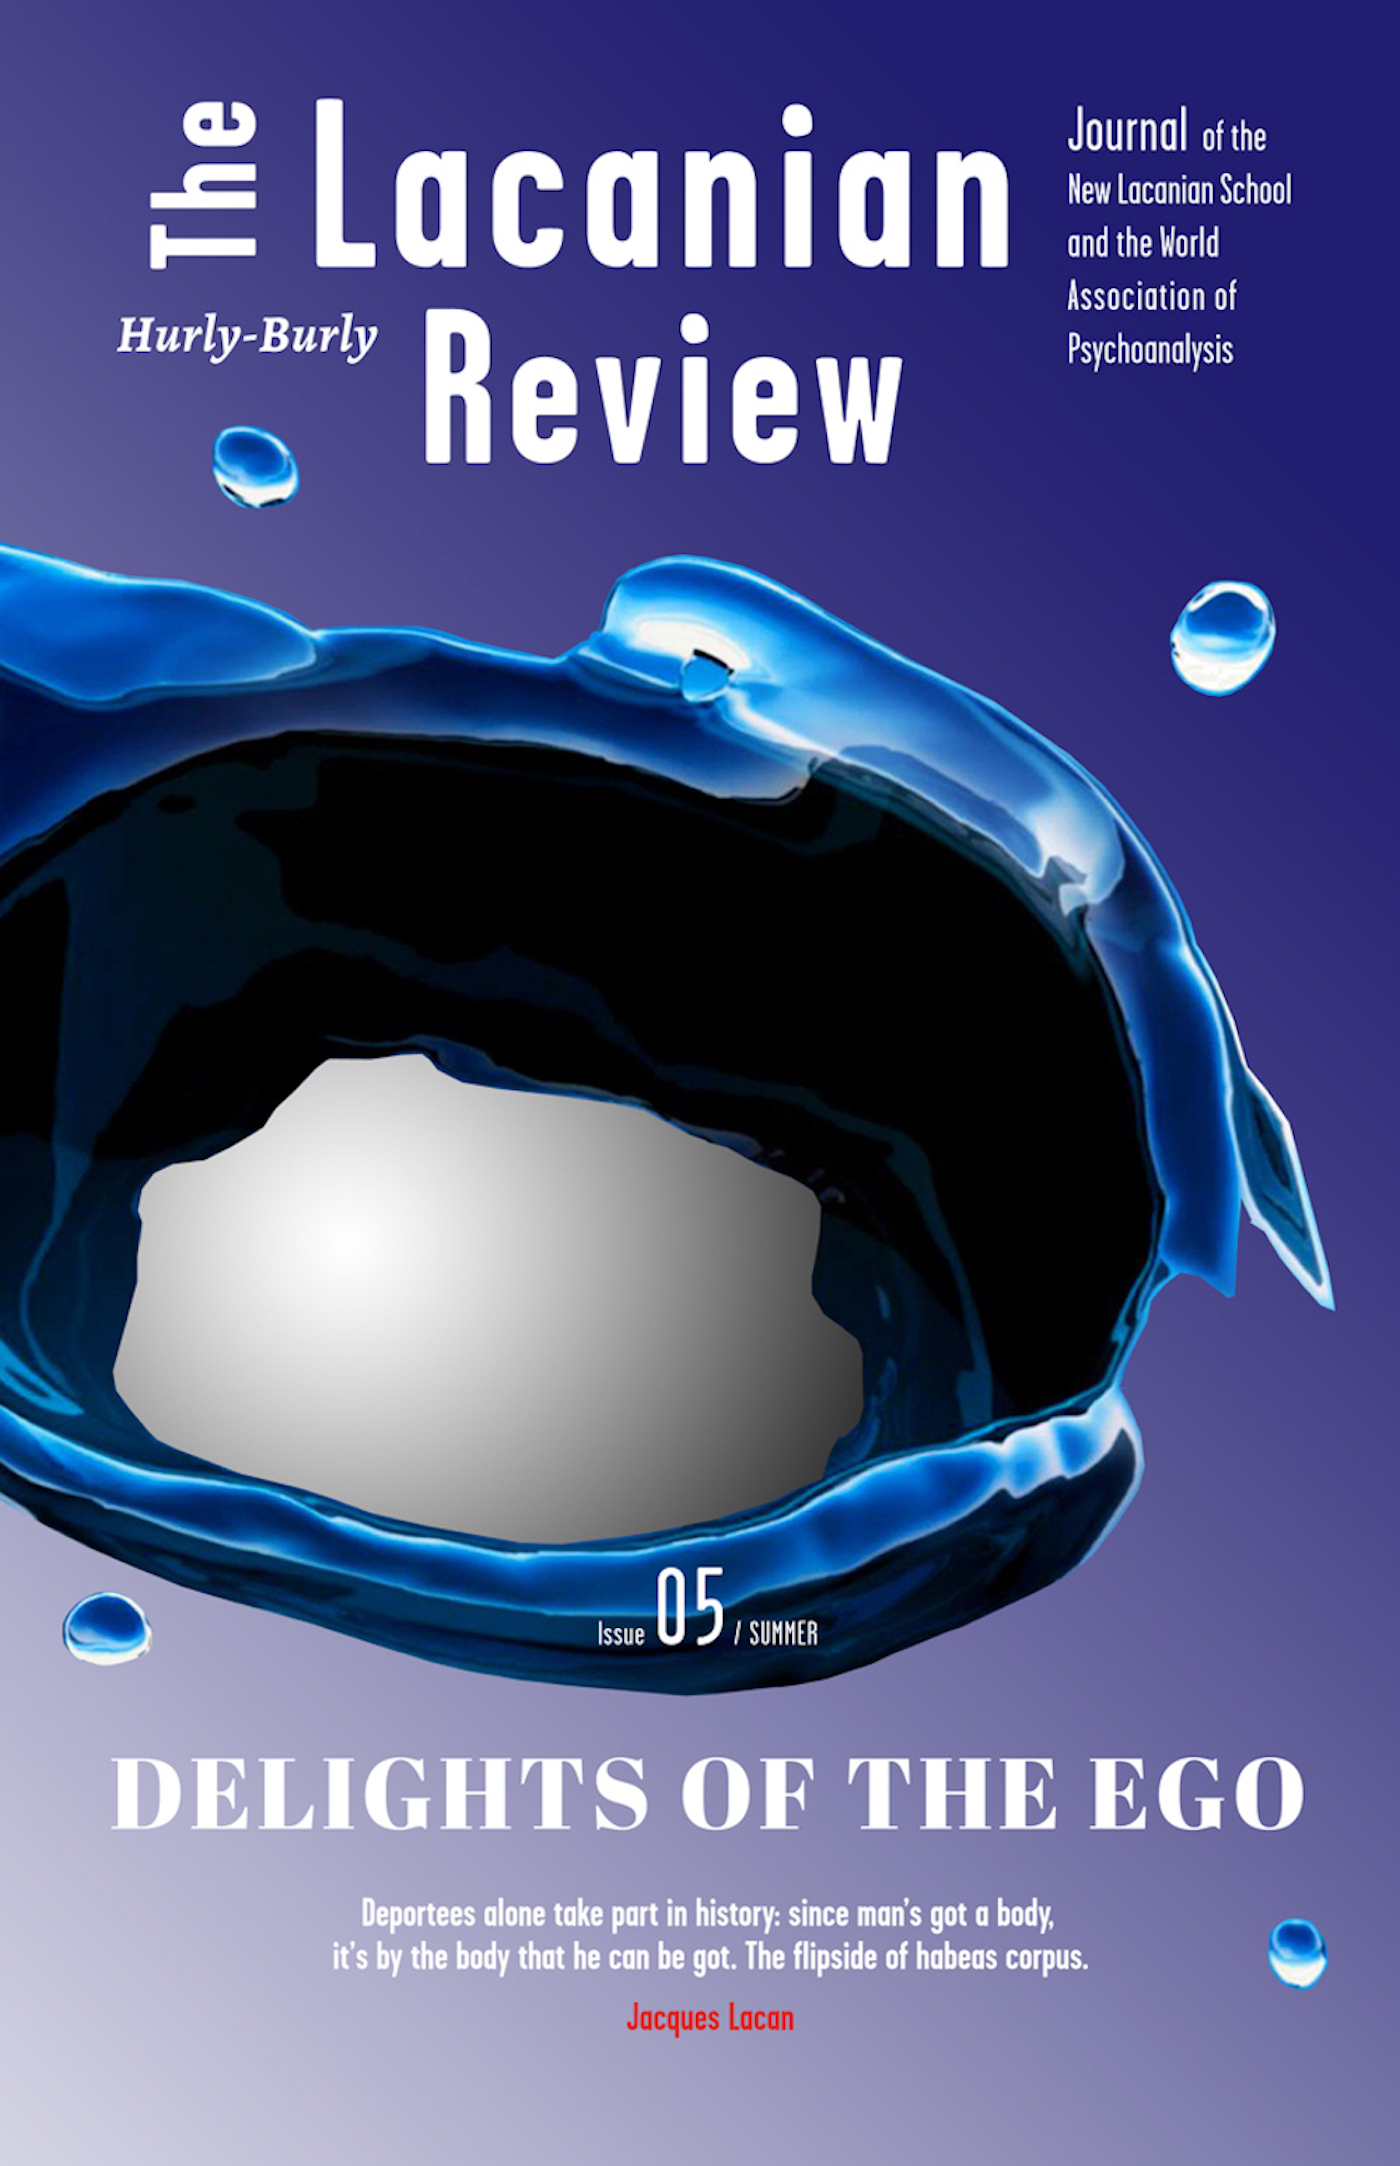 The Lacanian Review - tome 5 Delights of the Ego